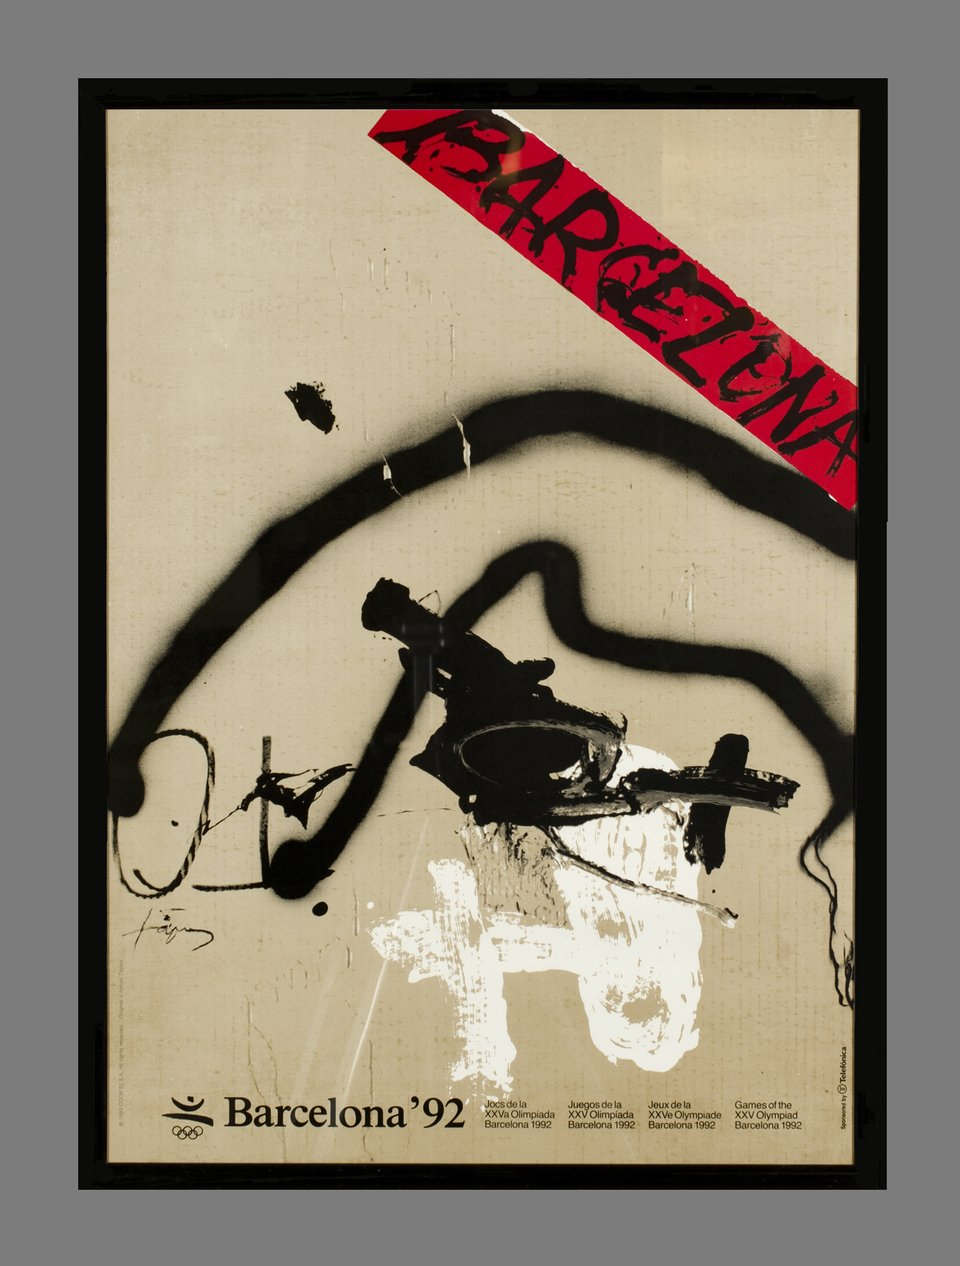 Olympic Games Barcelona 92 – Vintage poster – Antoni TAPIES – 1992